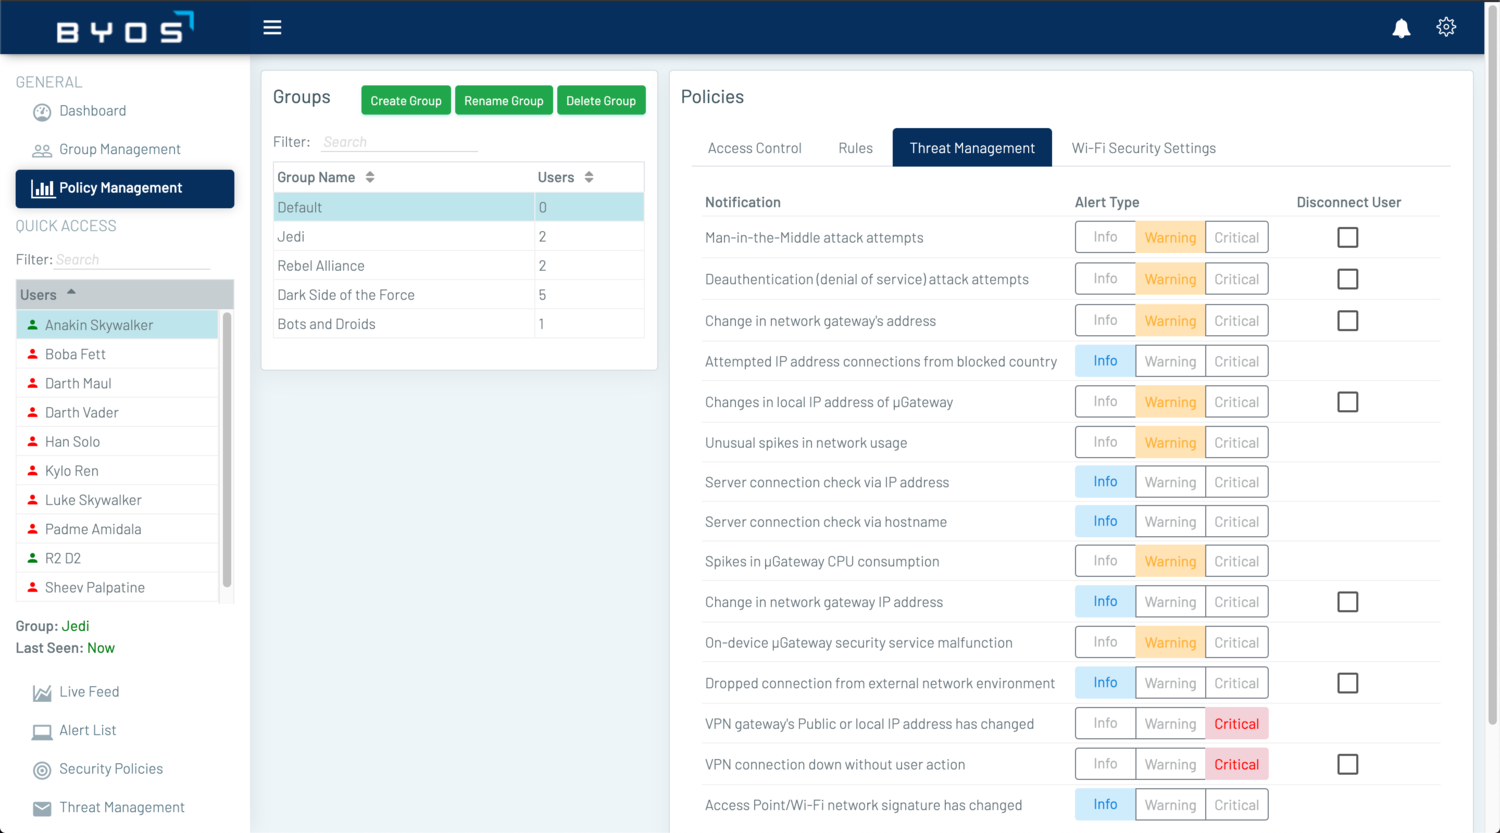 The Threat Management feature within Policy Management tab allows Admistrators to set the alert notification types based on the different threats and alerts.